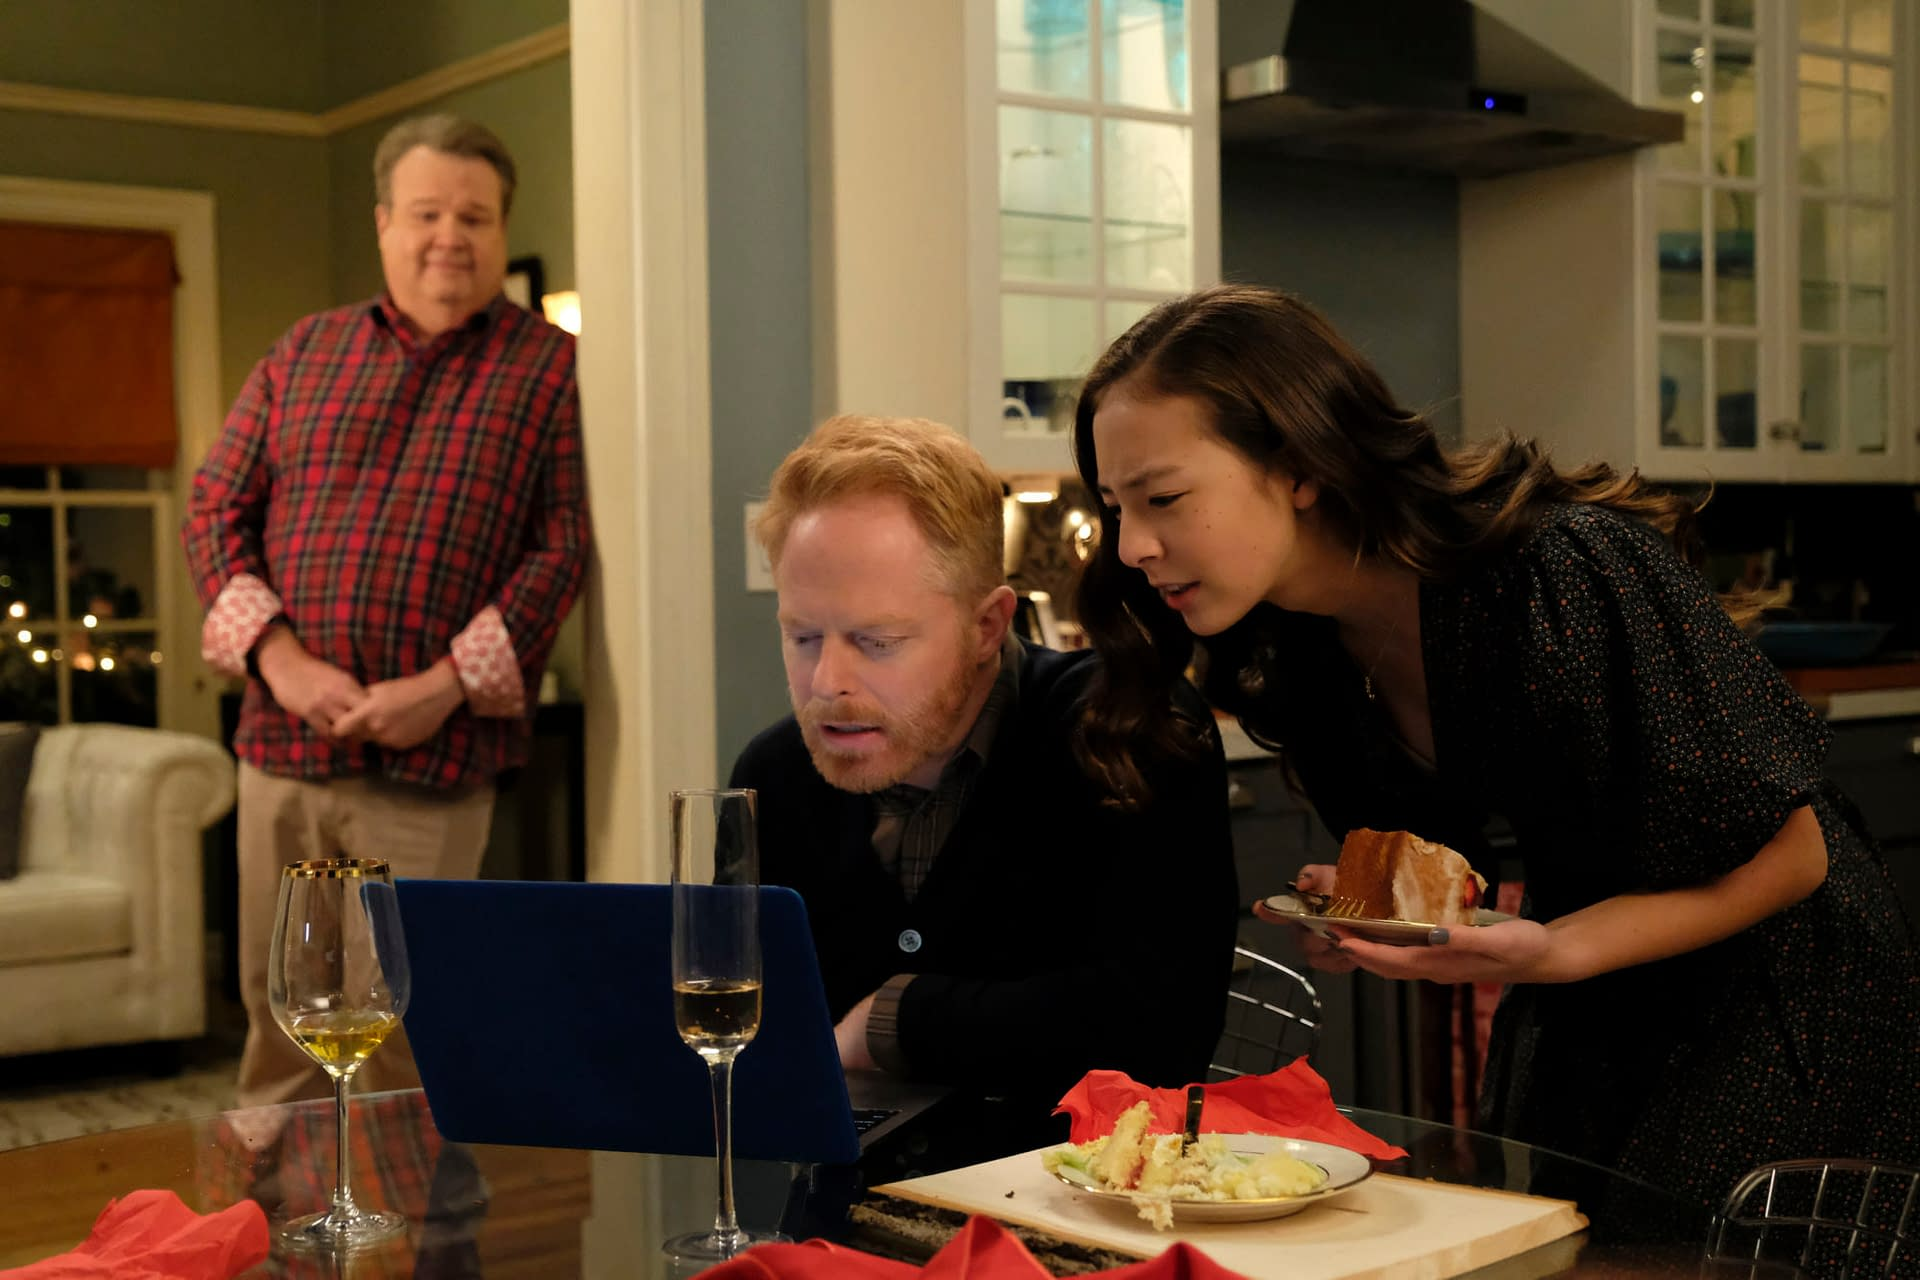 """Modern Family"" Season 11 ""The Last Christmas"": Ho-Ho-Hoping Santa Brings ""Less Ethnic Stereotyping"" This Year [REVIEW/OPINION]"